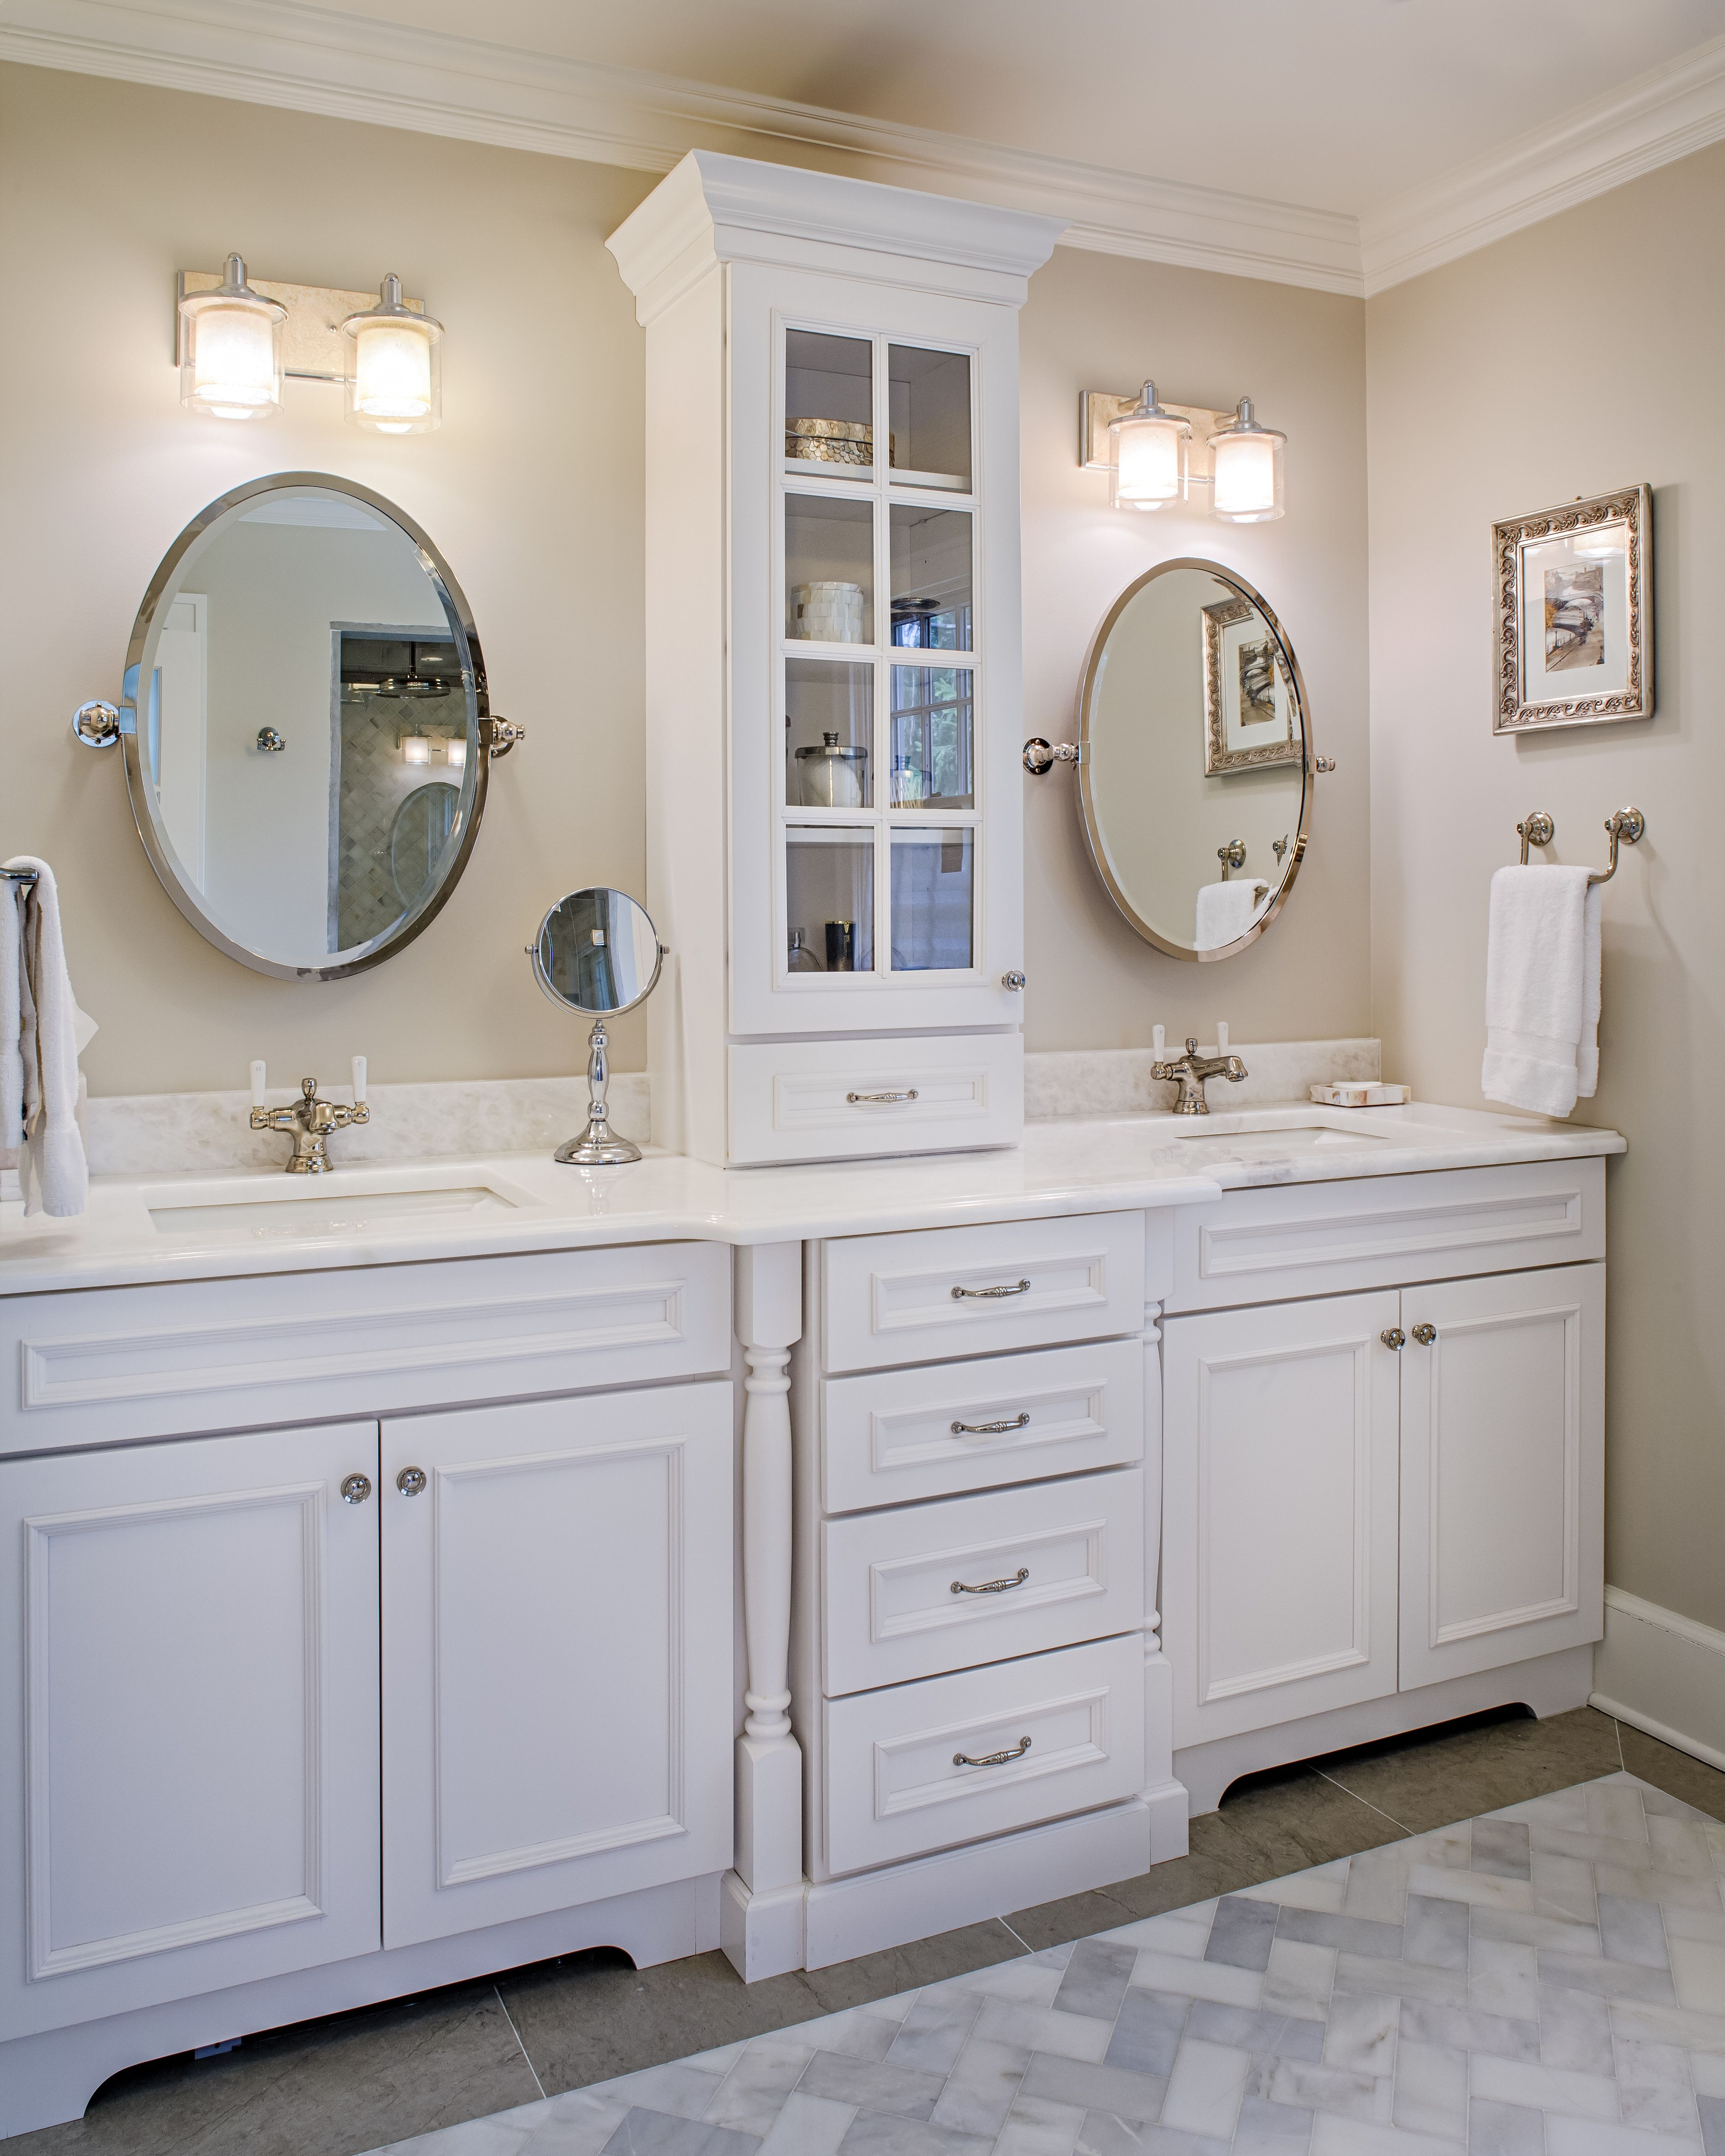 Asymmetrical Bathroom Vanity Master Bathroom Renovation With Tower And Double Vanity